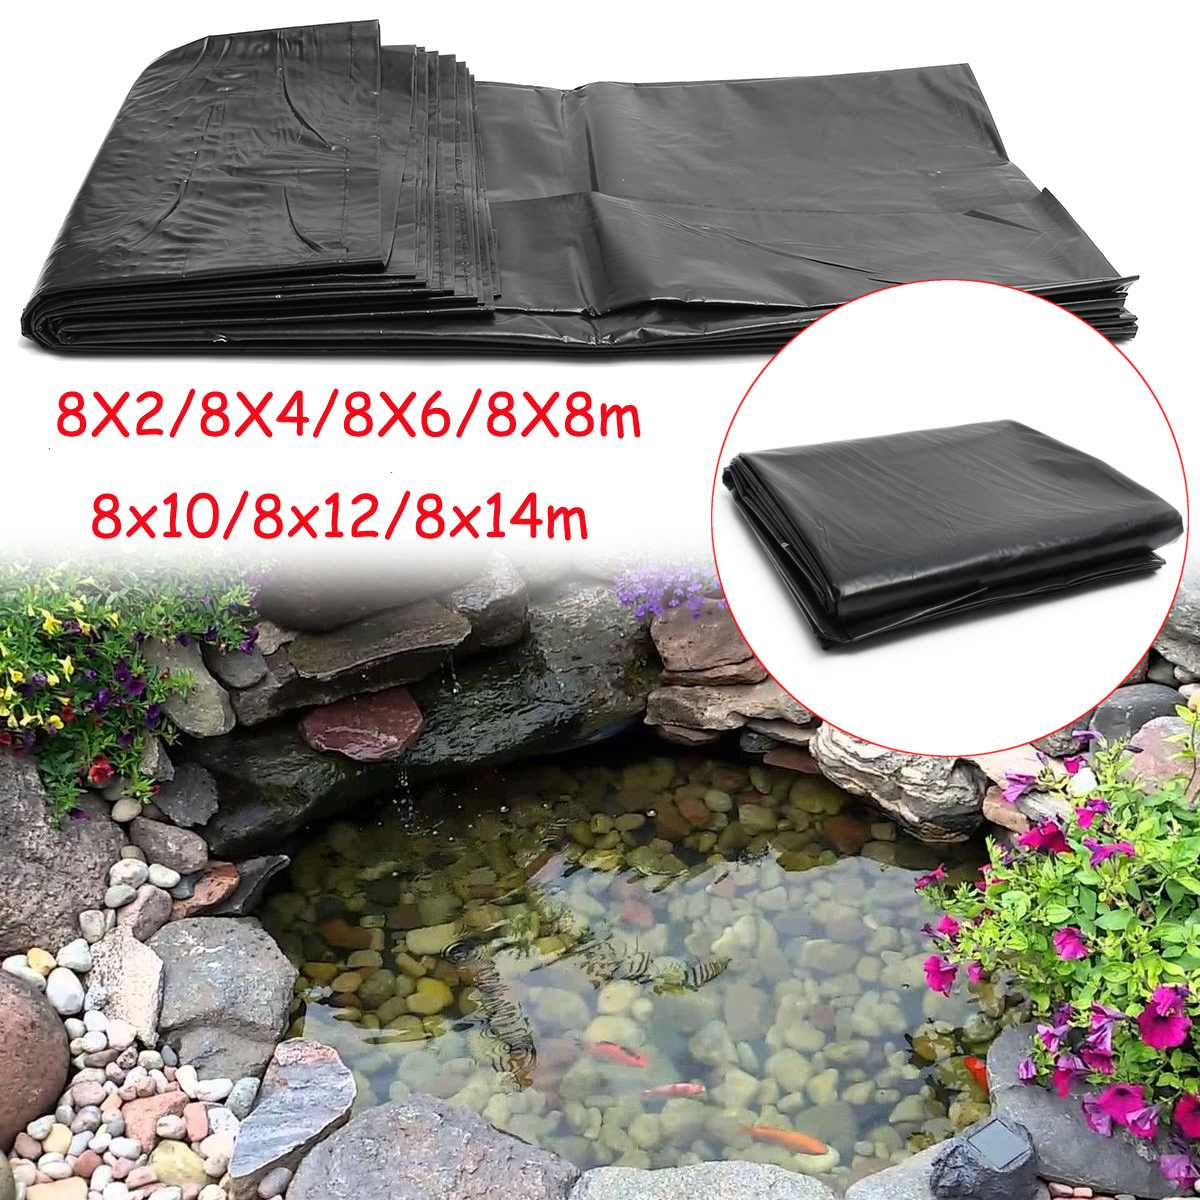 EPDM Rubber Pond Liner Fish Pond Liner Garden Pond Landscaping Pool Thick Heavy Duty Waterproof Membrane Liner Cloth 8m 7 Sizes